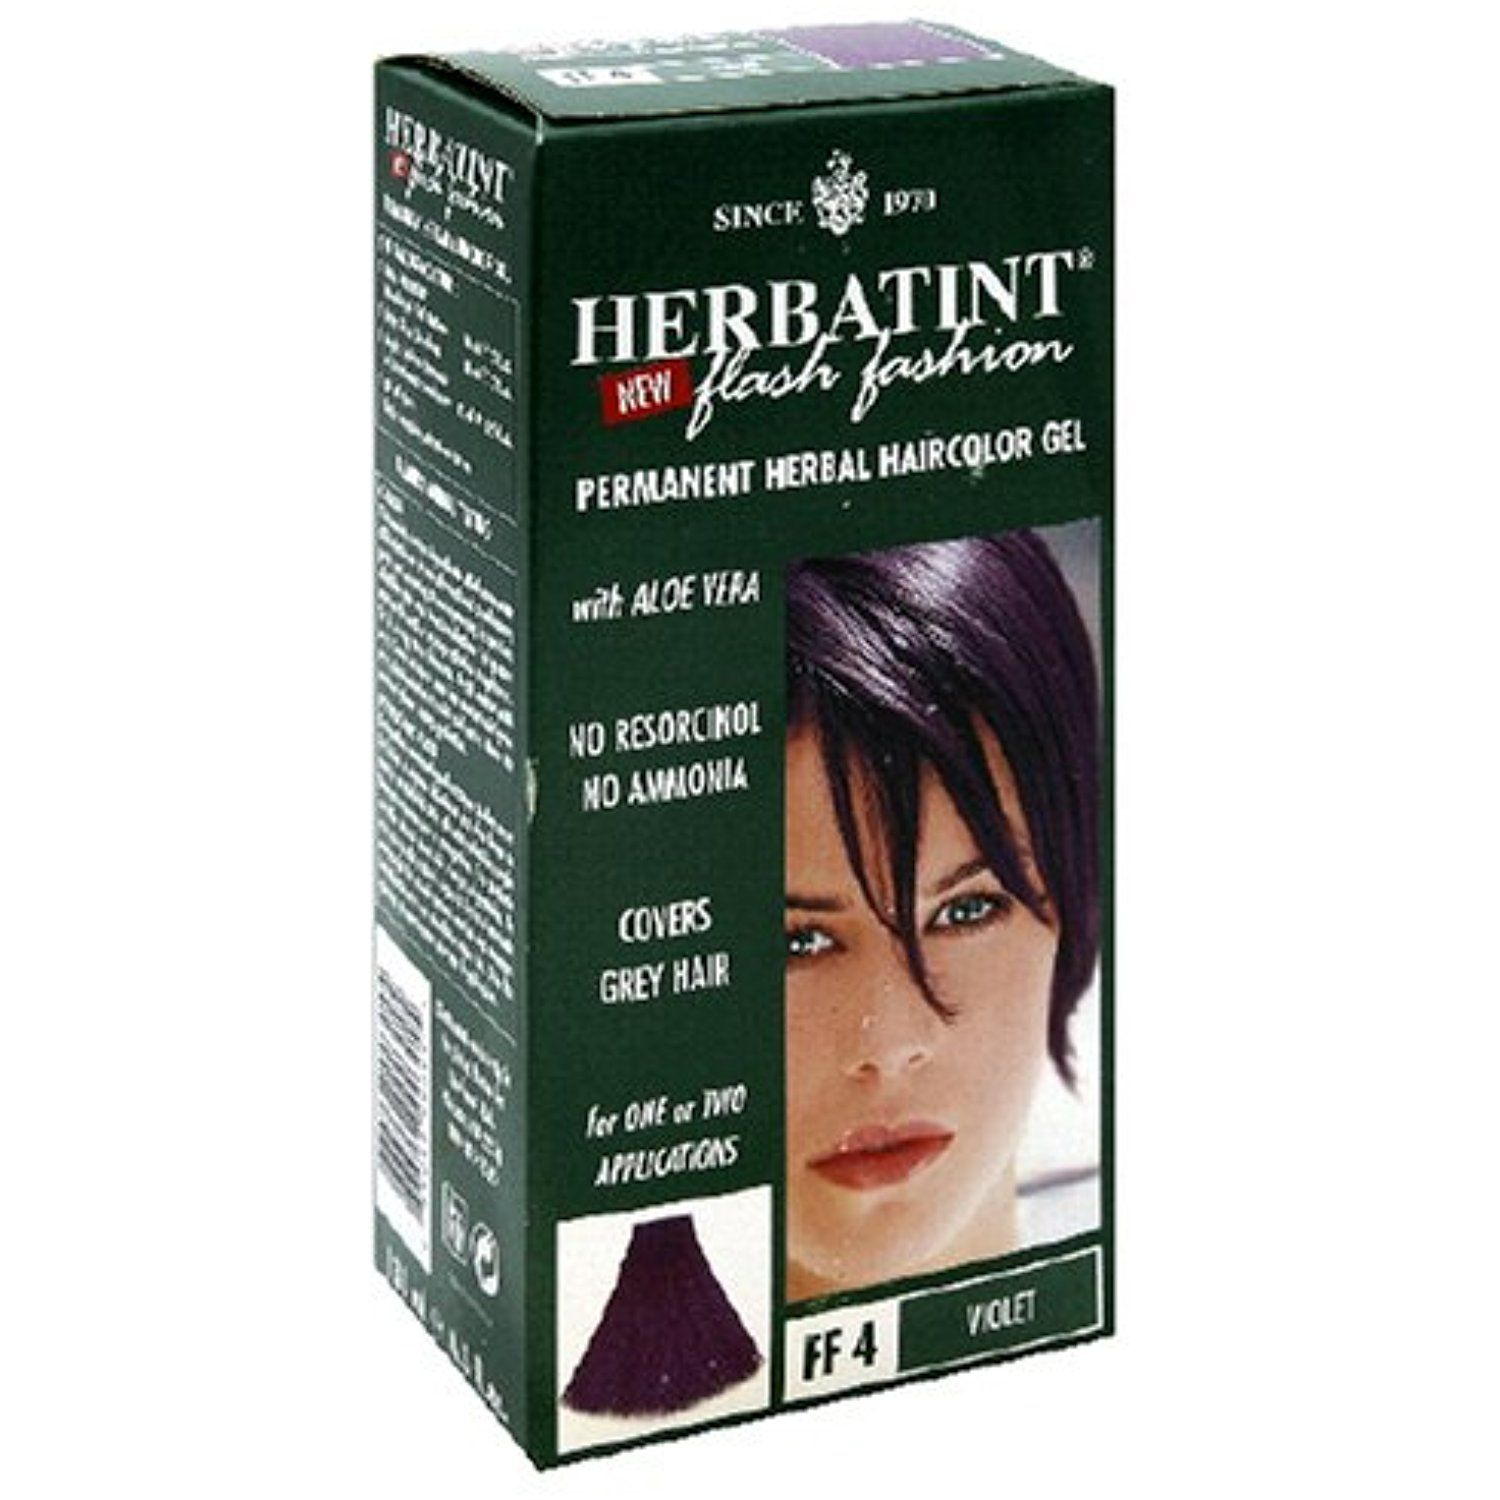 Herbatint Flash Fashion Permanent Herbal Haircolor Gel Violet Ff4